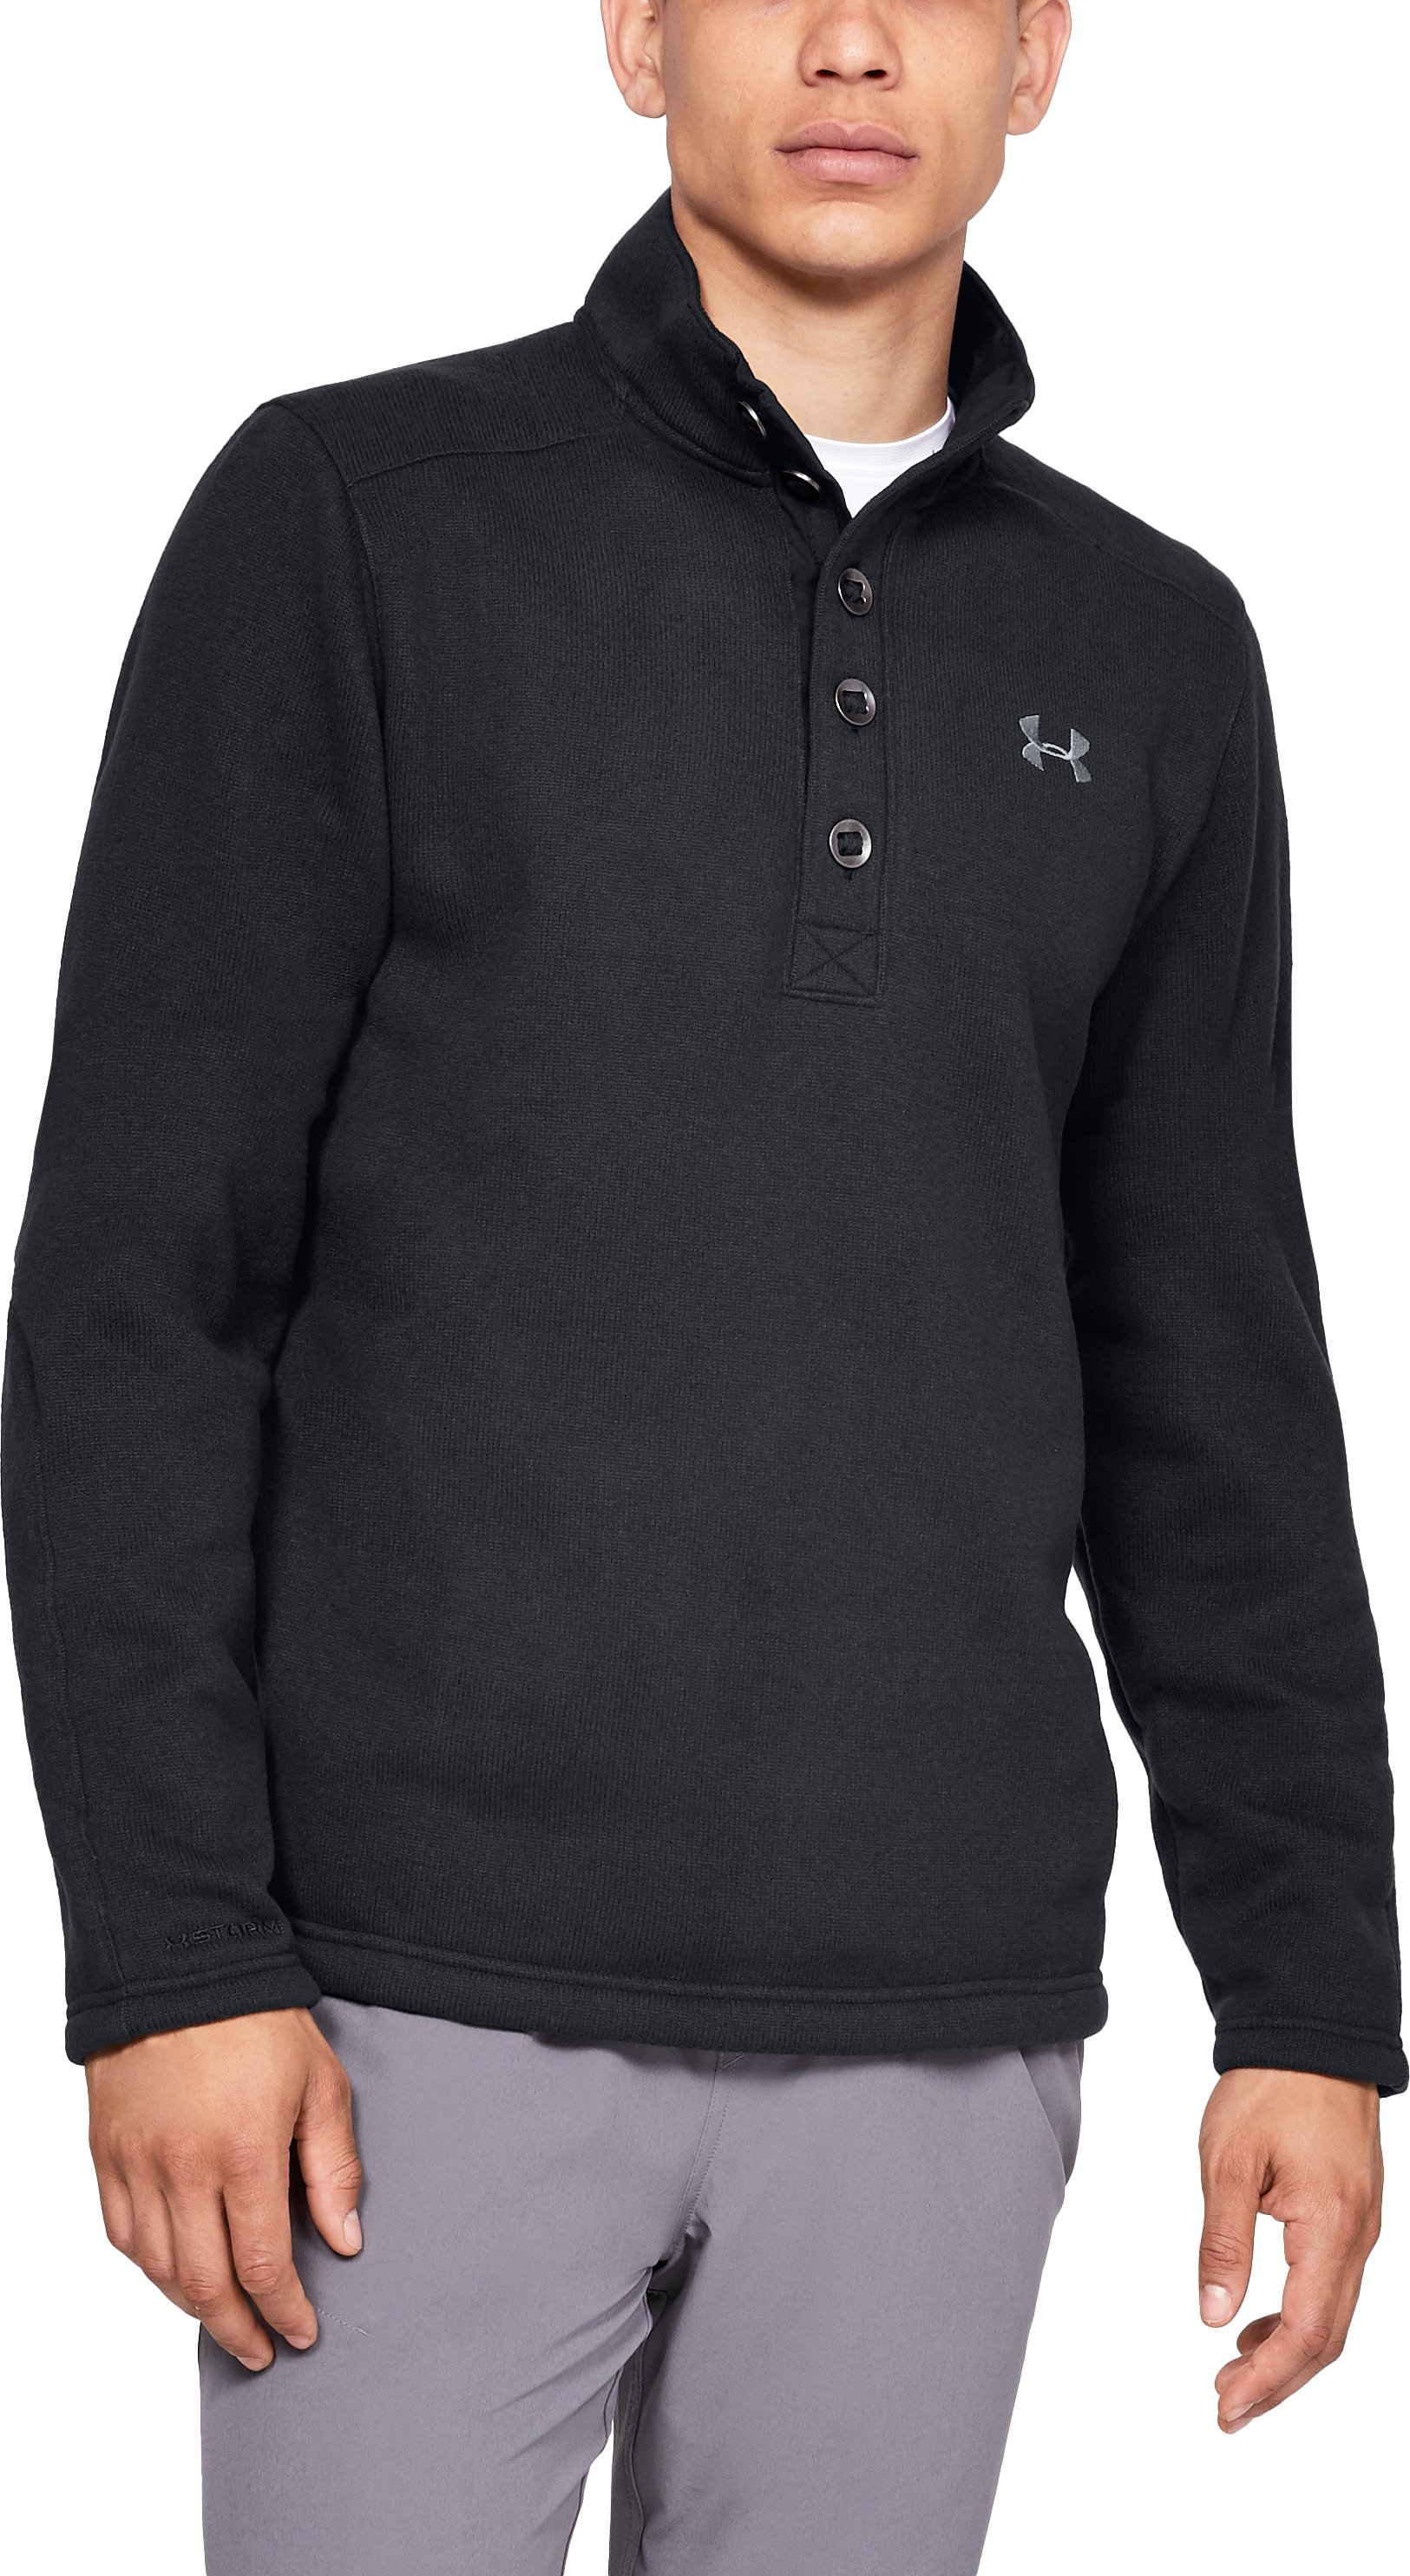 medium sweaters Men's UA Storm Specialist Sweater Great innovation UA!!!...Great look and feel....This sweater is amazing.